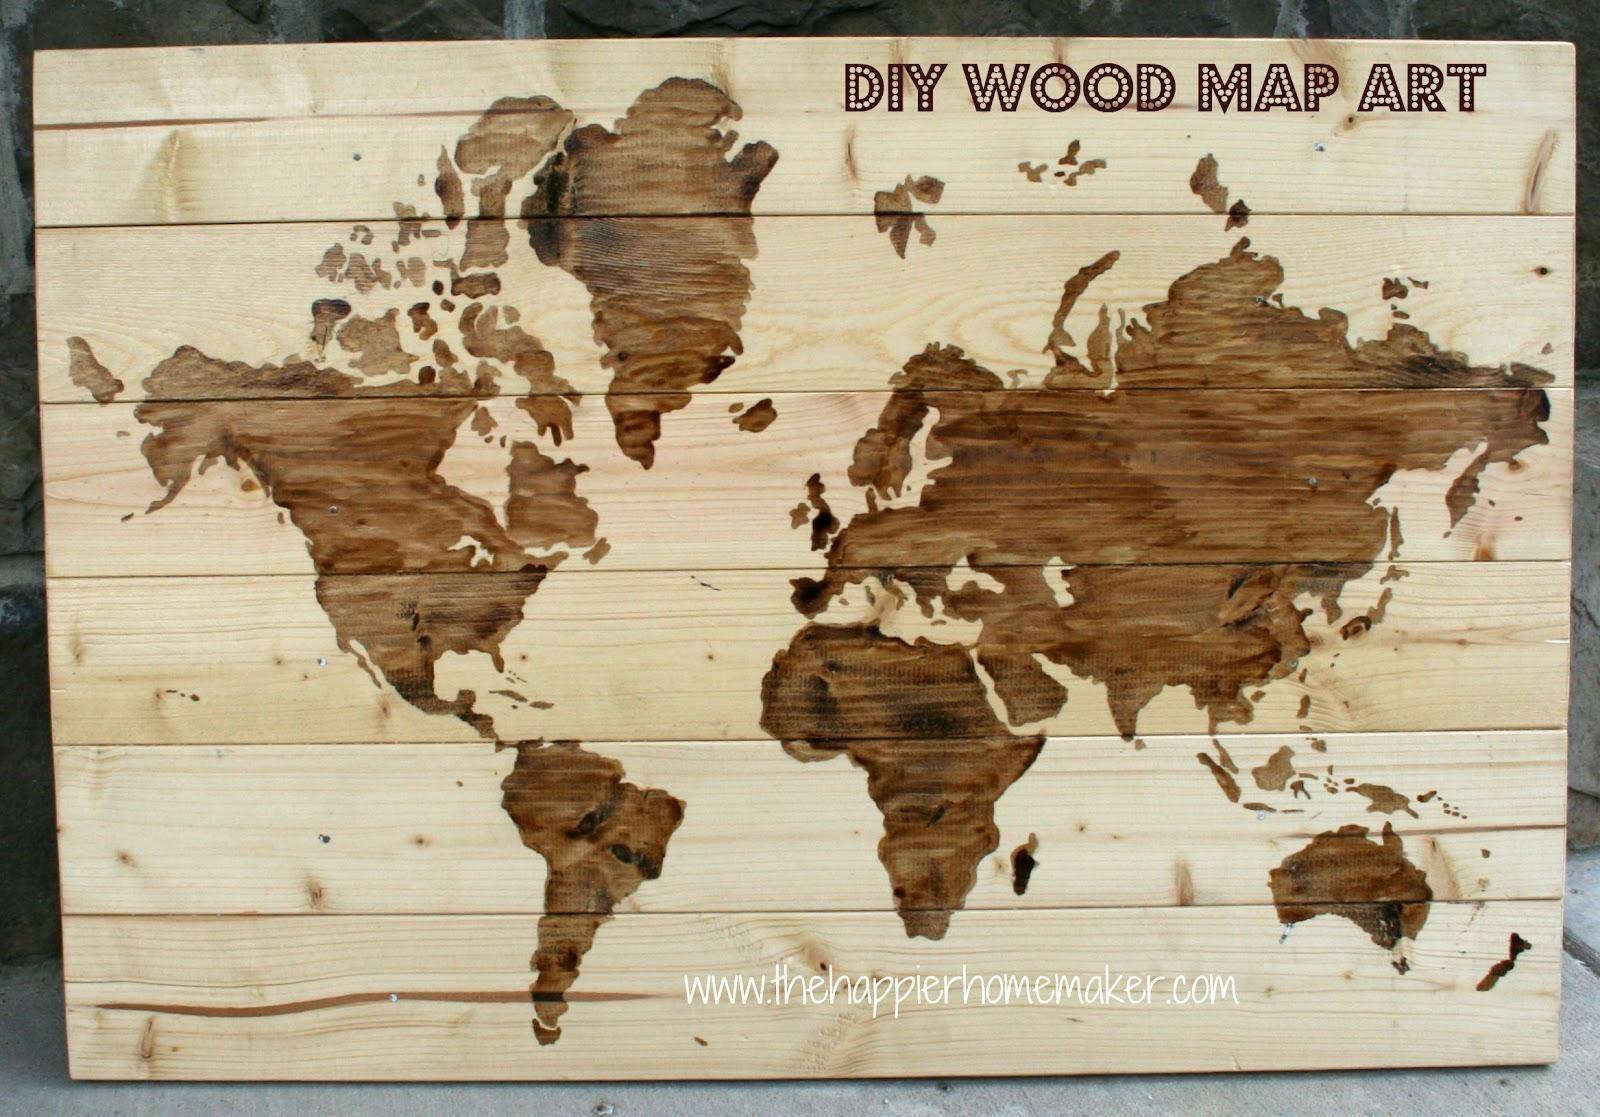 Diy Wooden World Map Art | The Happier Homemaker With Regard To Wooden World Map Wall Art (Image 4 of 20)